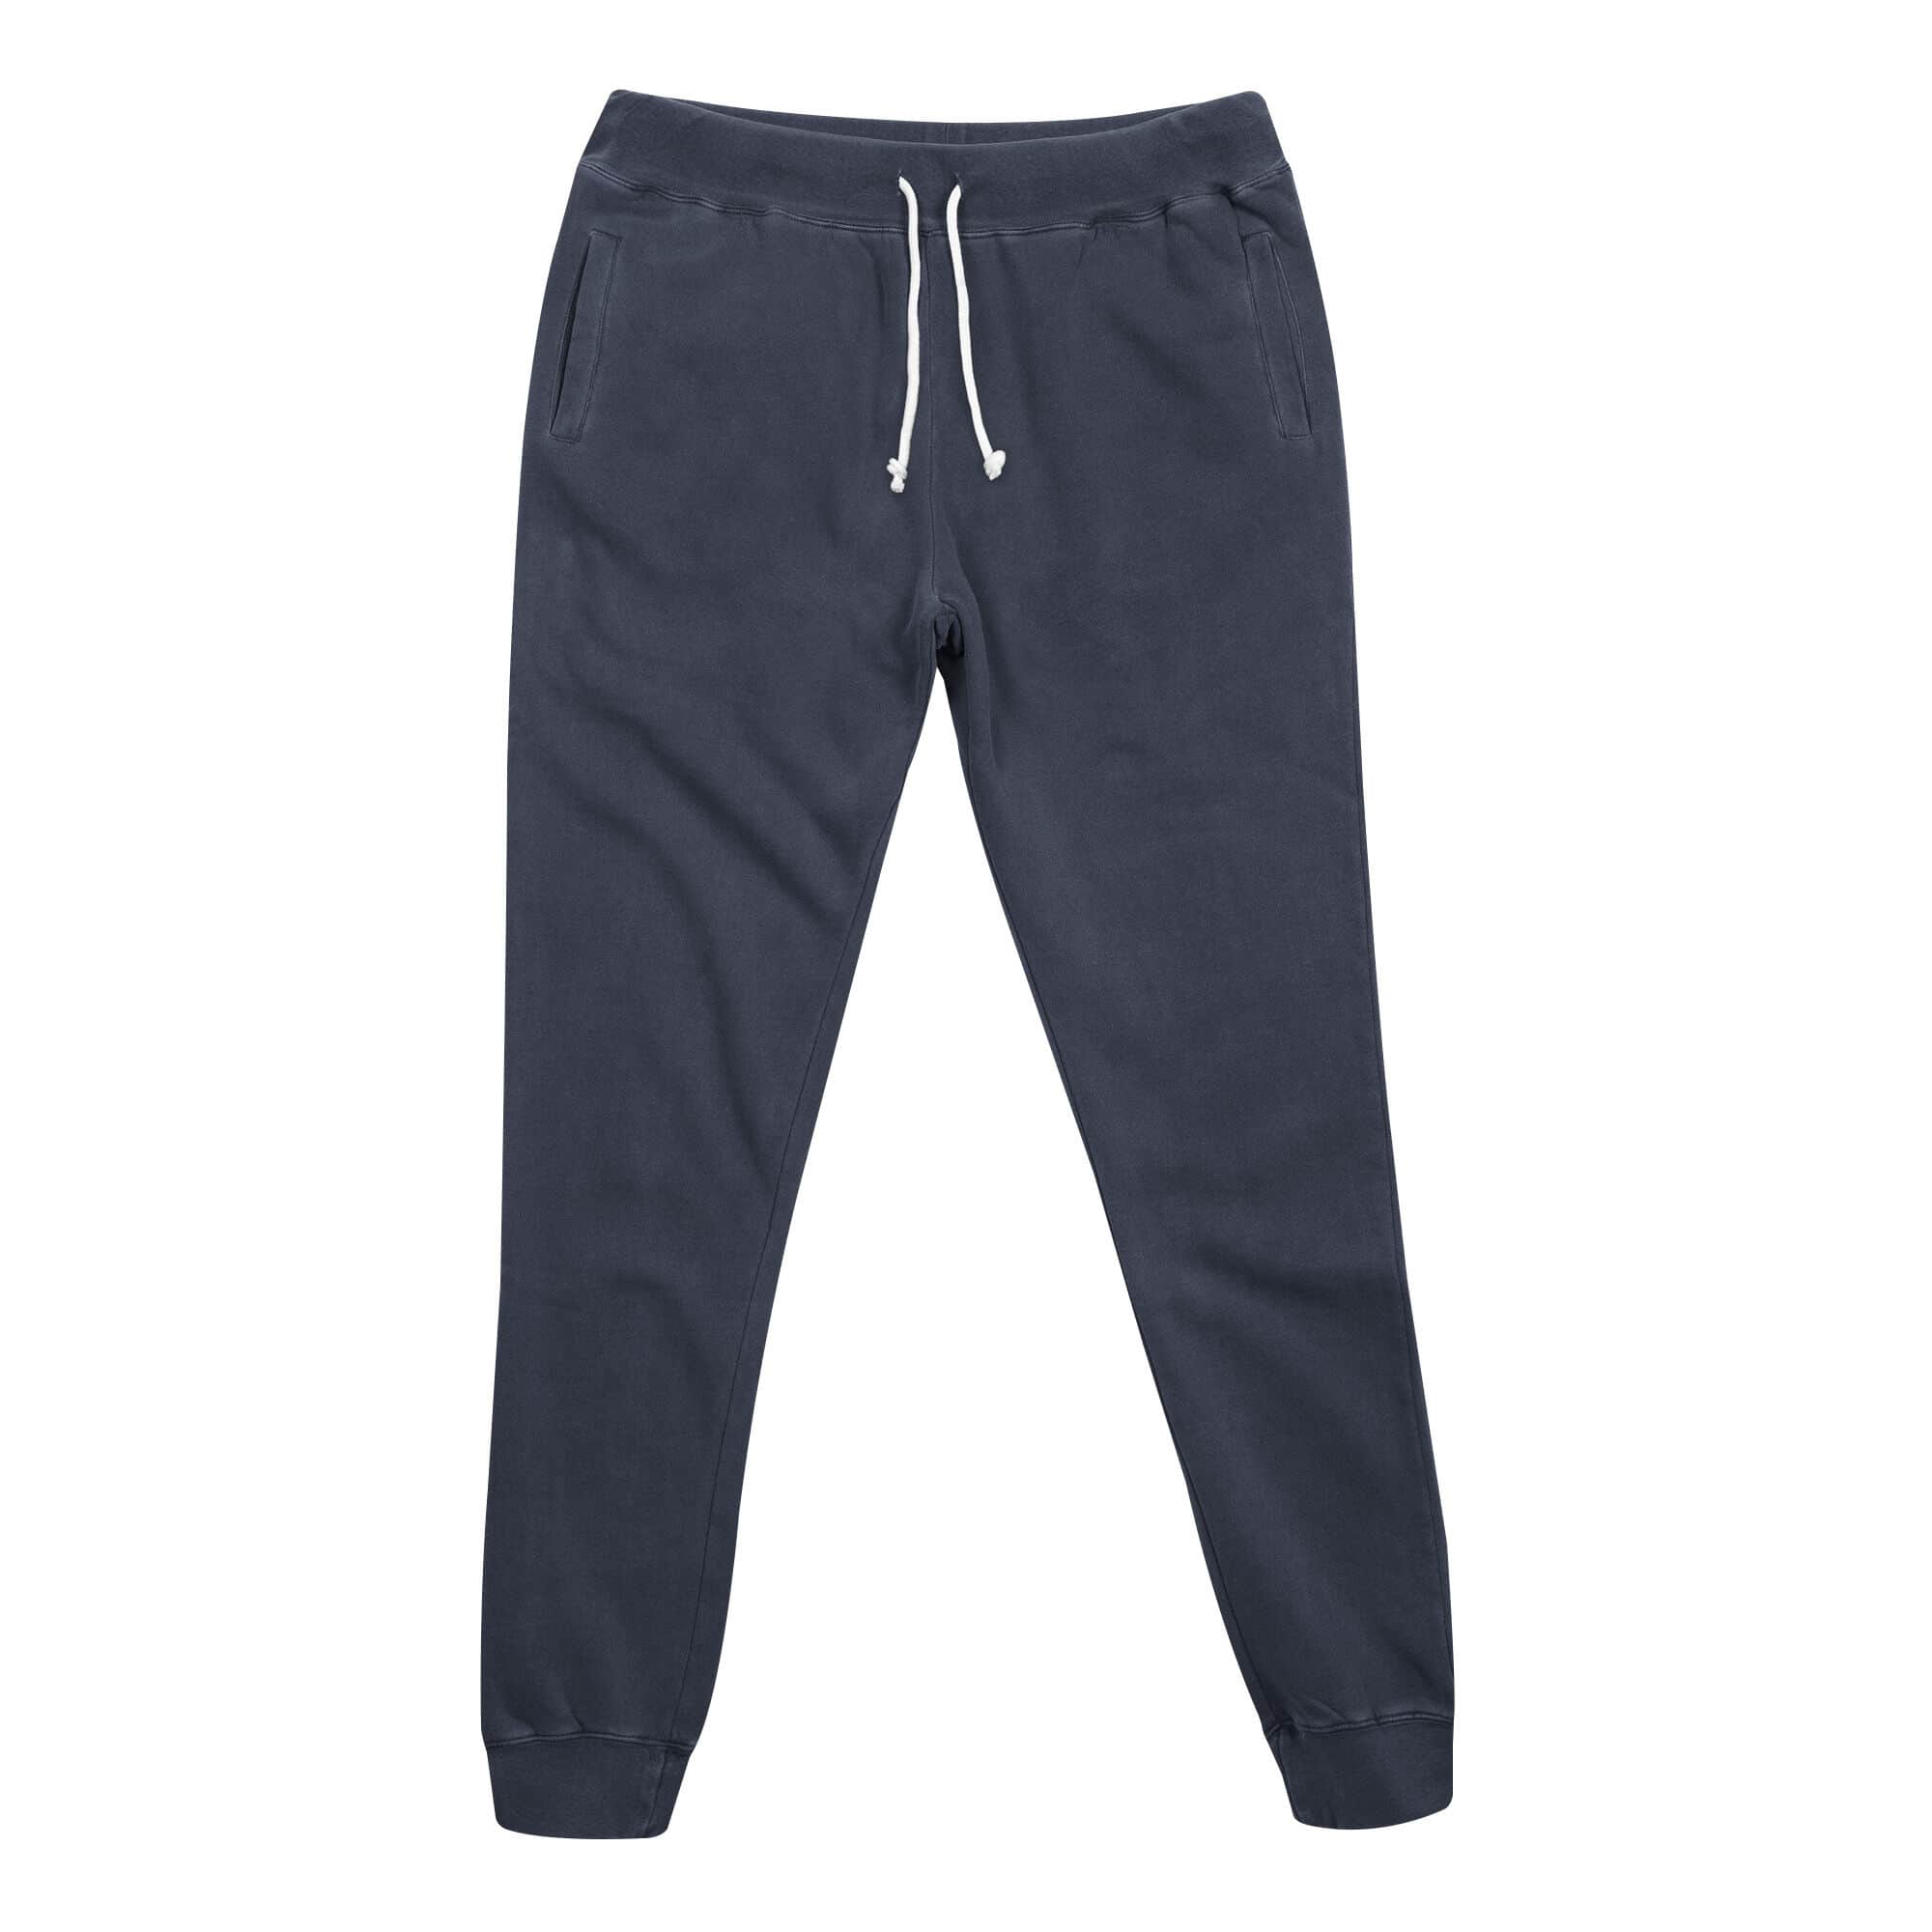 Mitchell & Ness Basic Pigment Dyed Fleece Pant